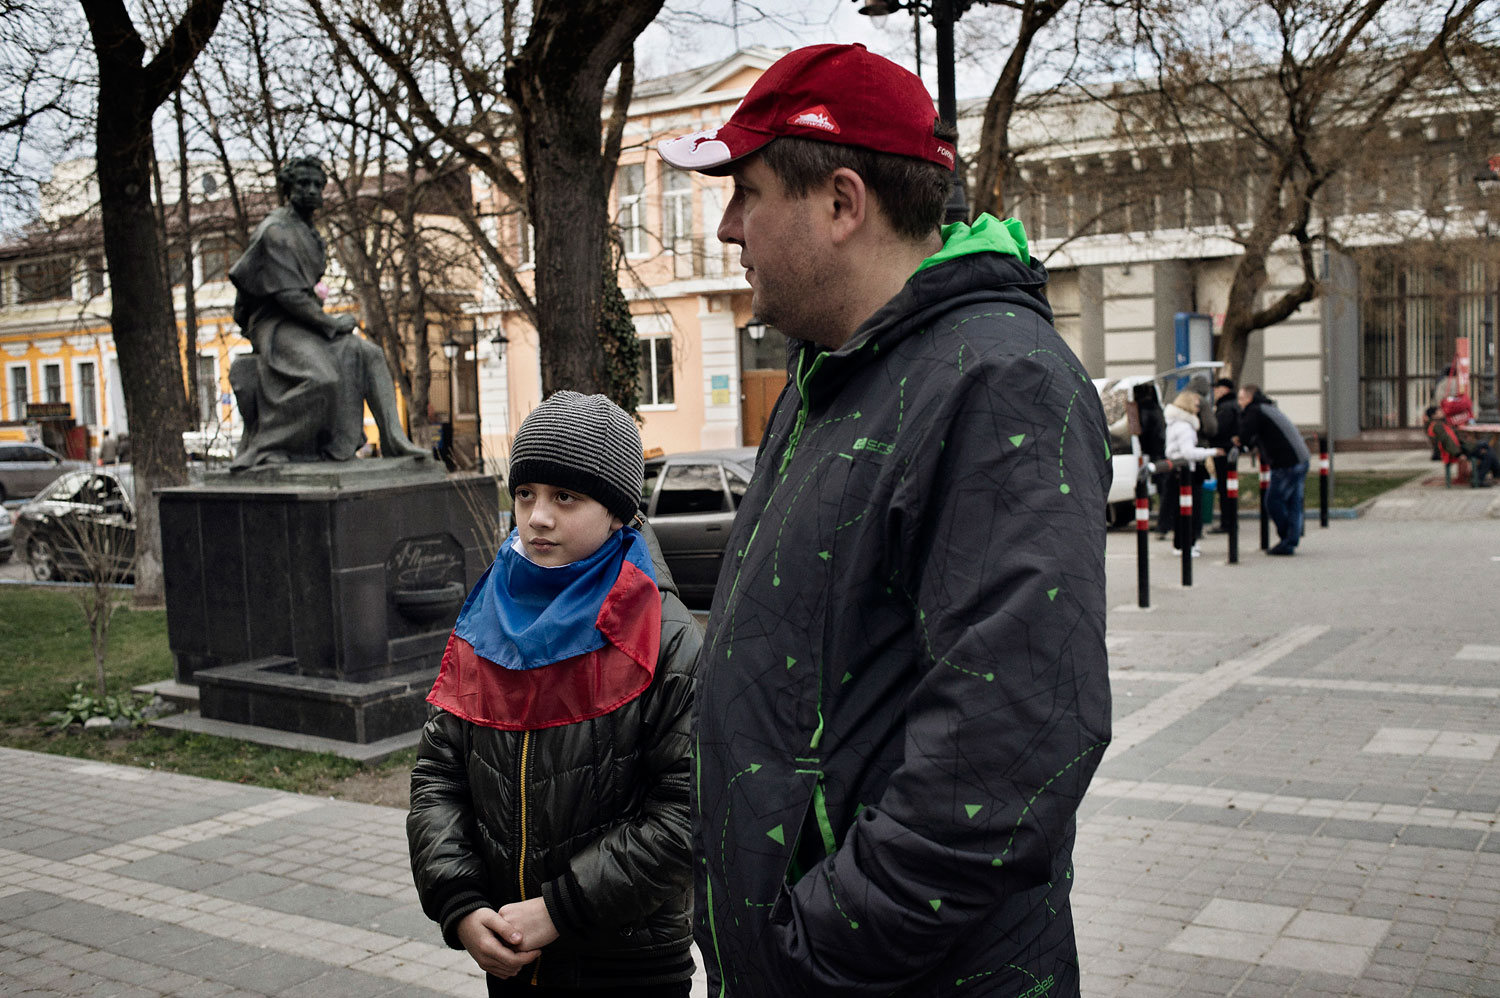 Ivan Drobkov, an ethnic Russian native of Crimea, walks near the regional parliament with his 9-year-old son Bogdan on March 17, 2014.